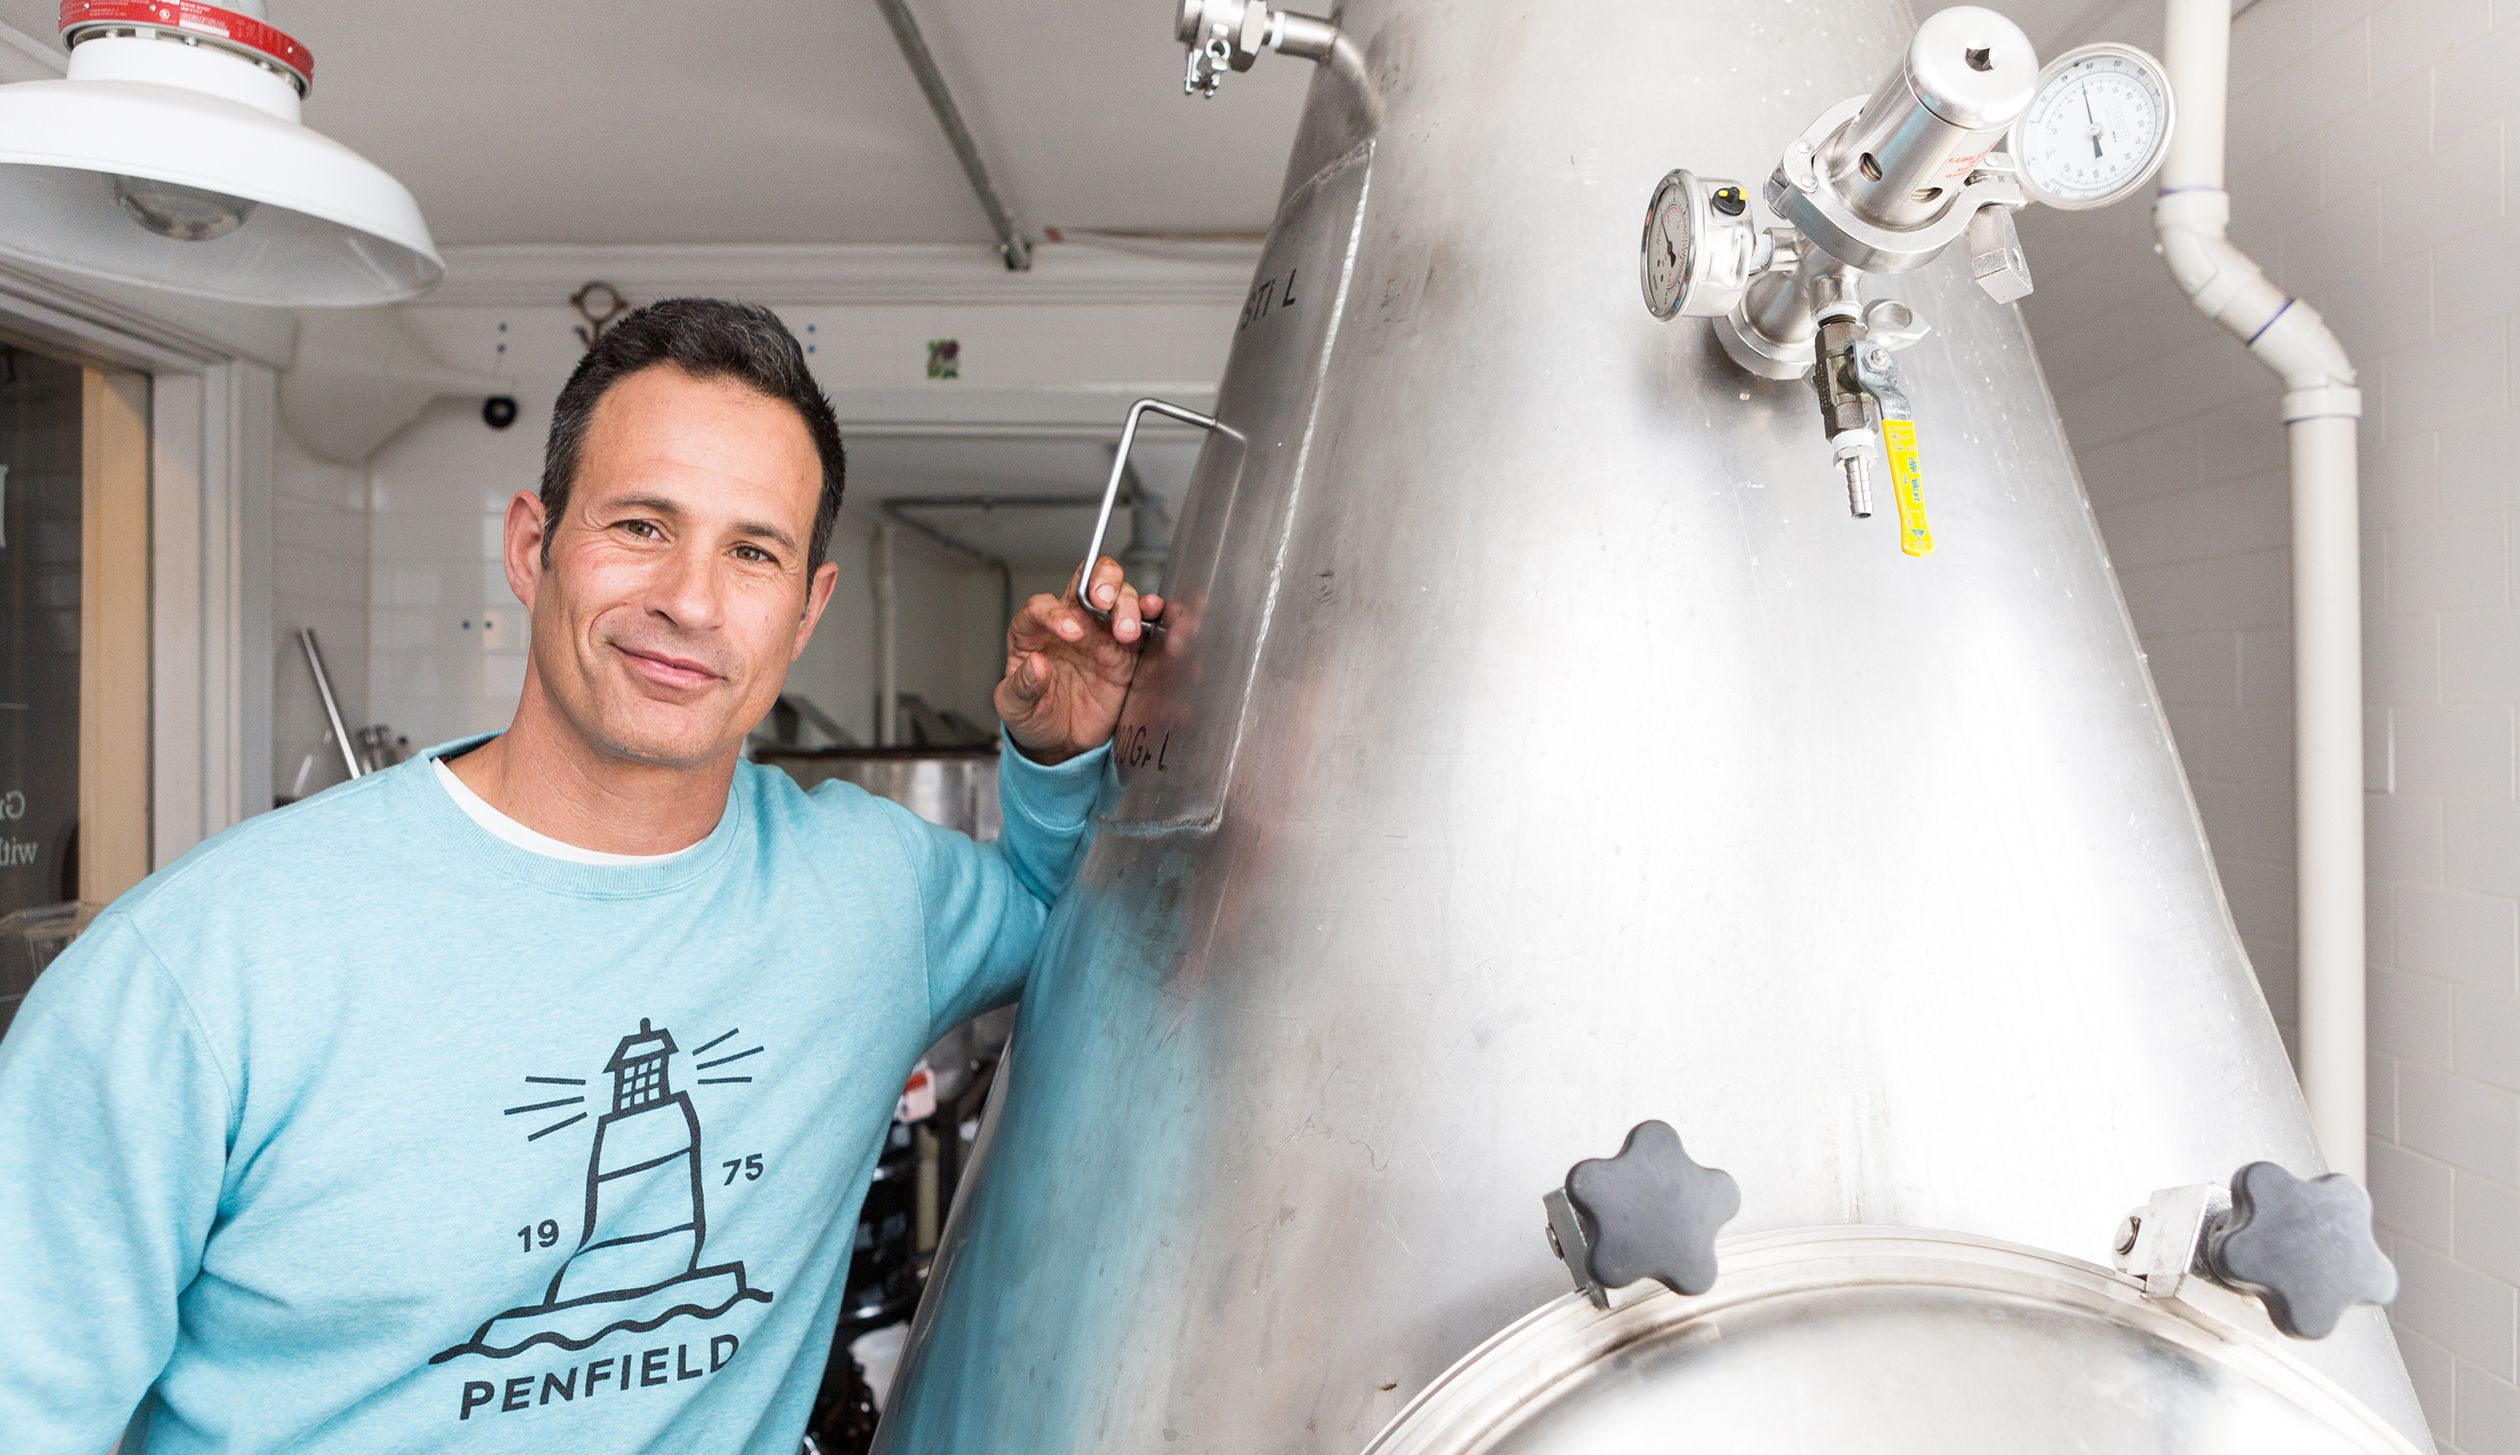 Dogfish Head's New Beer Contains The Same Ingredients As Mace Pepper Spray photo